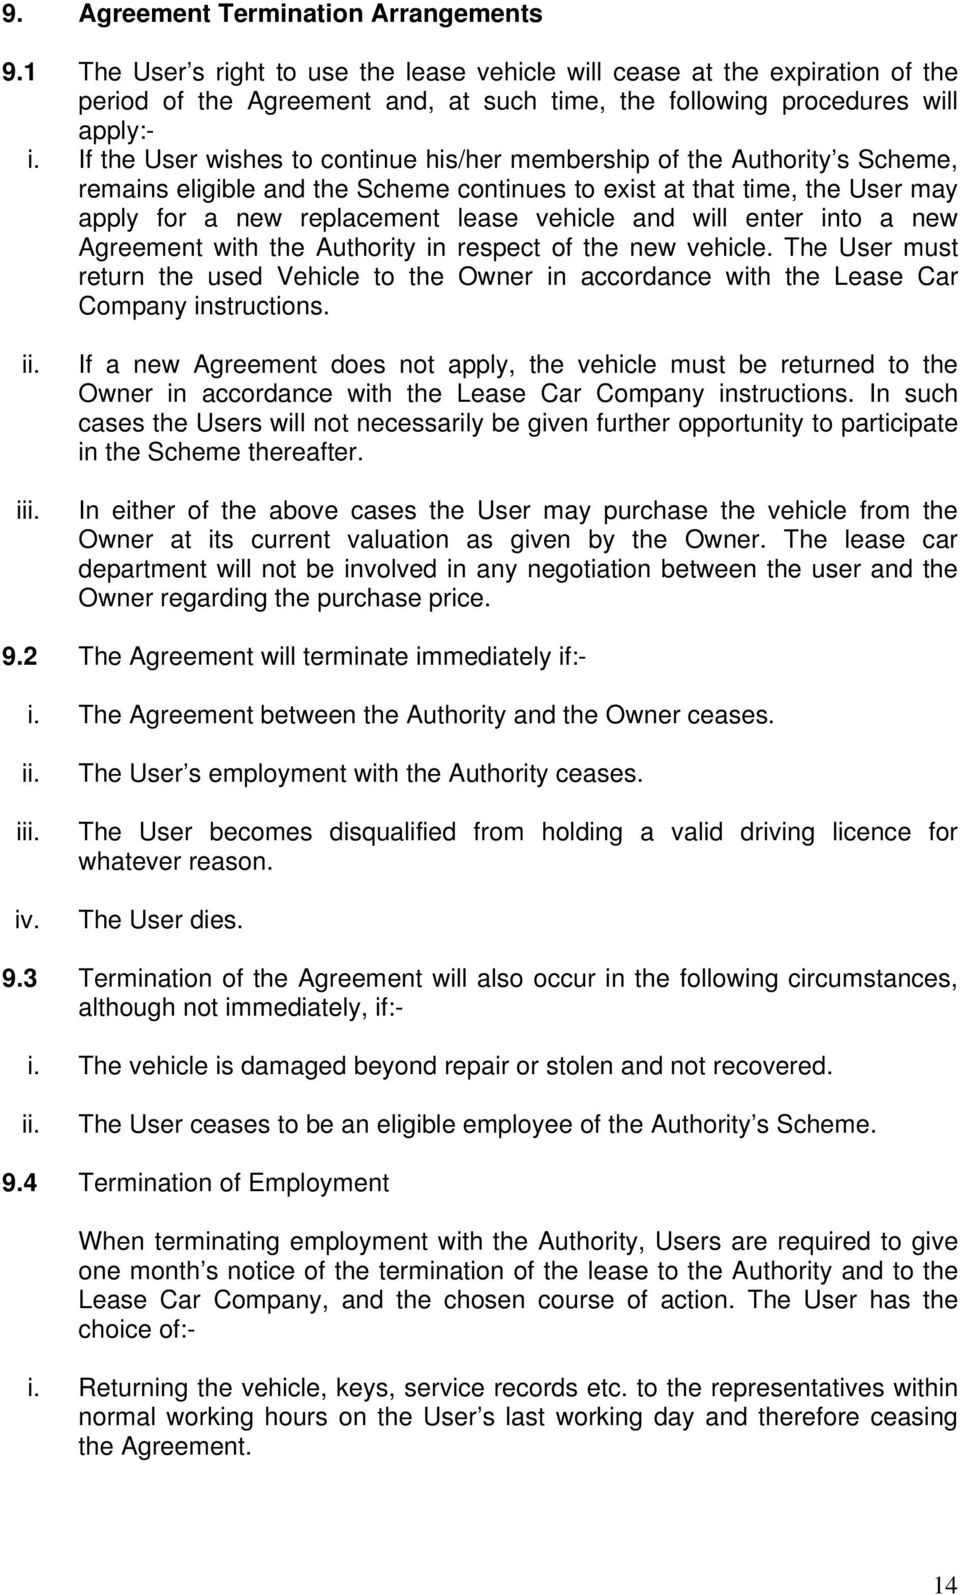 If the User wishes to continue his/her membership of the Authority s Scheme, remains eligible and the Scheme continues to exist at that time, the User may apply for a new replacement lease vehicle